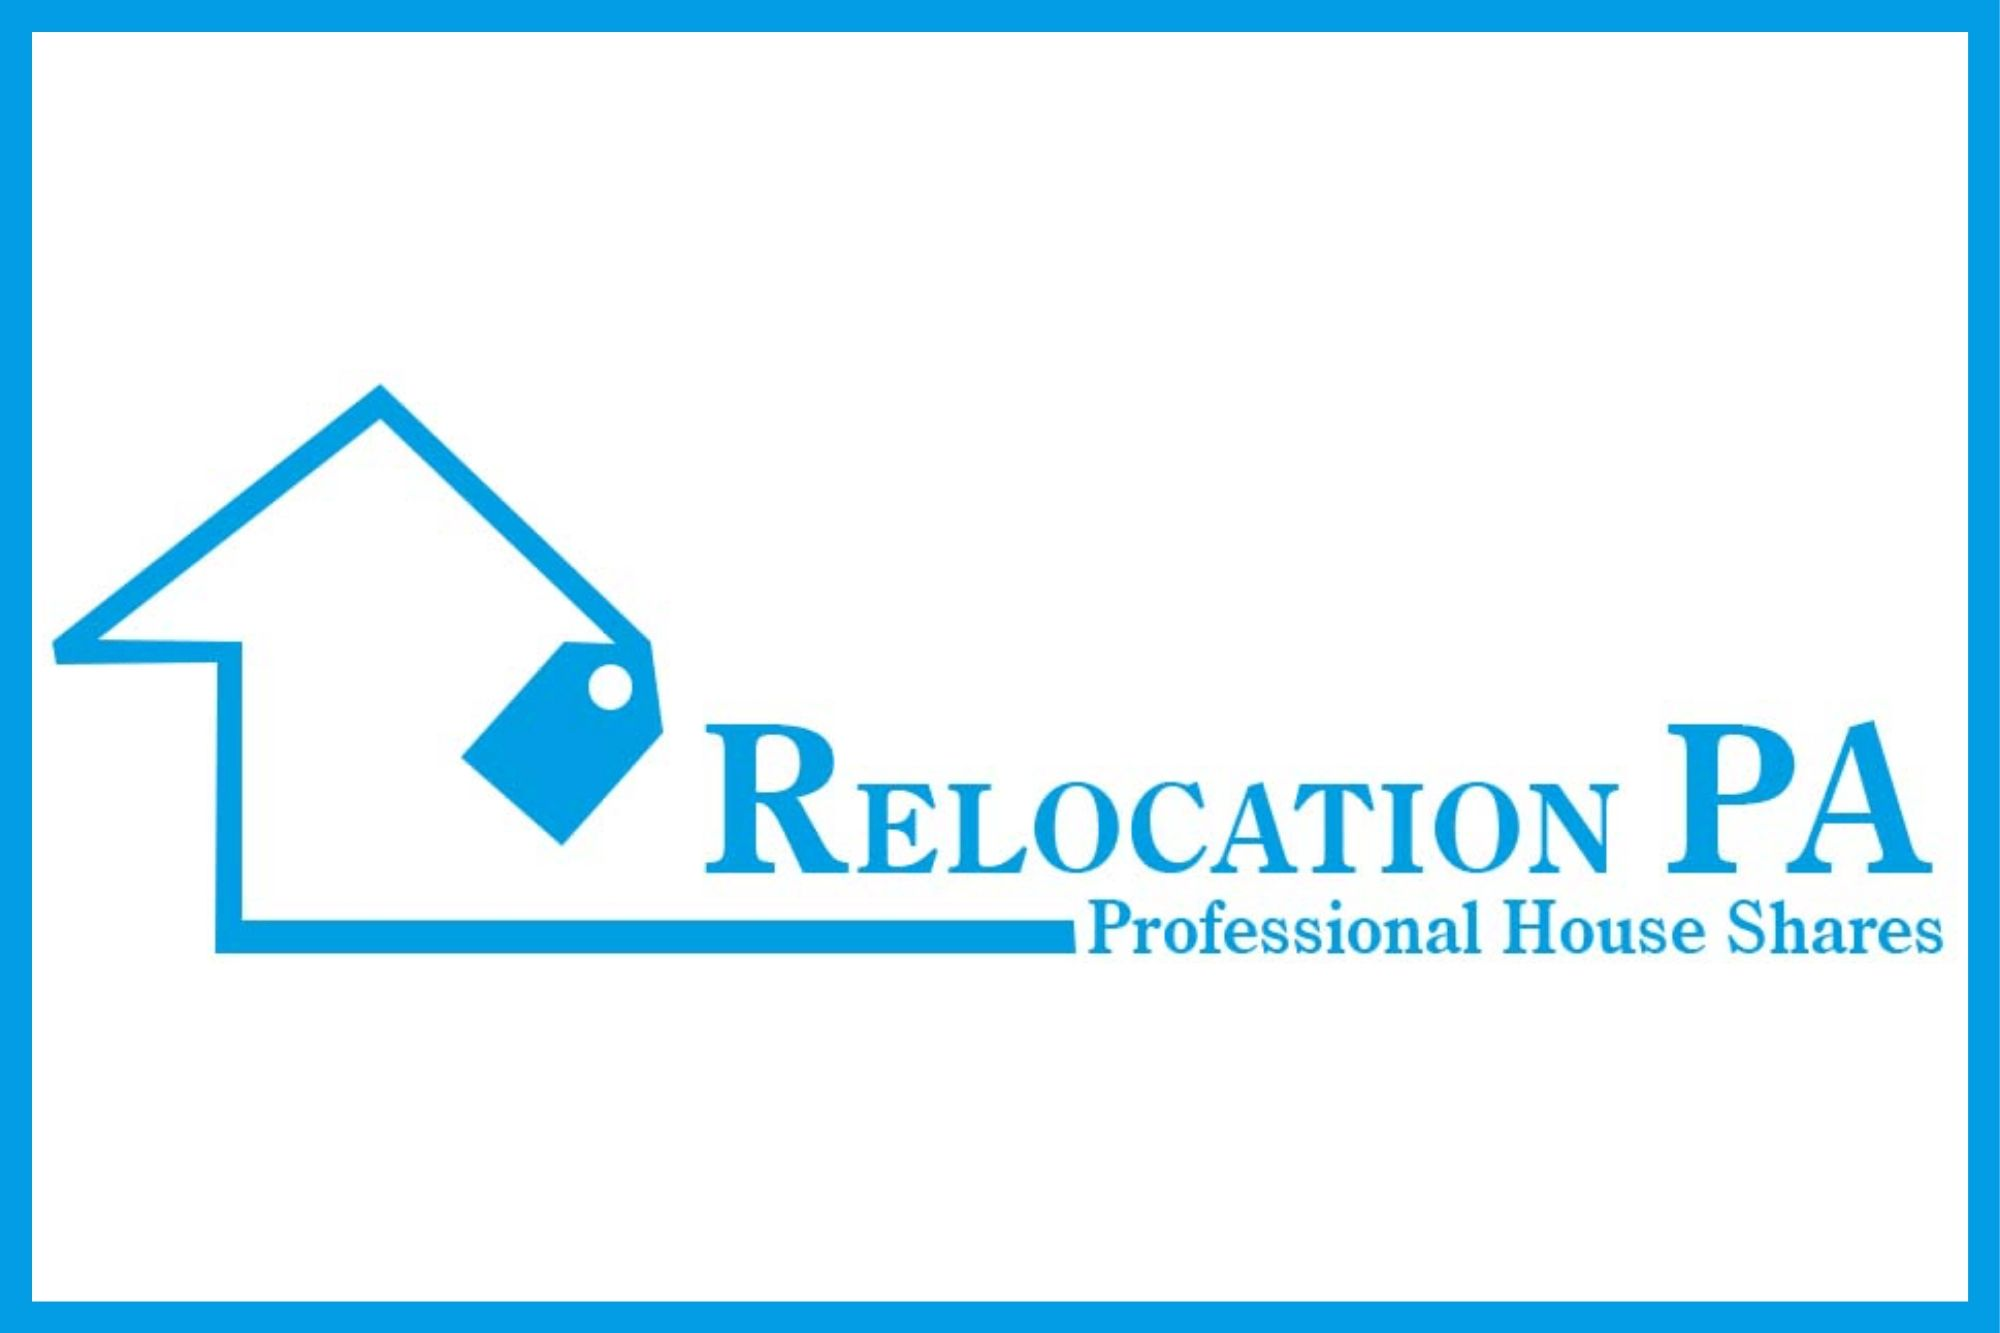 Relocation PA